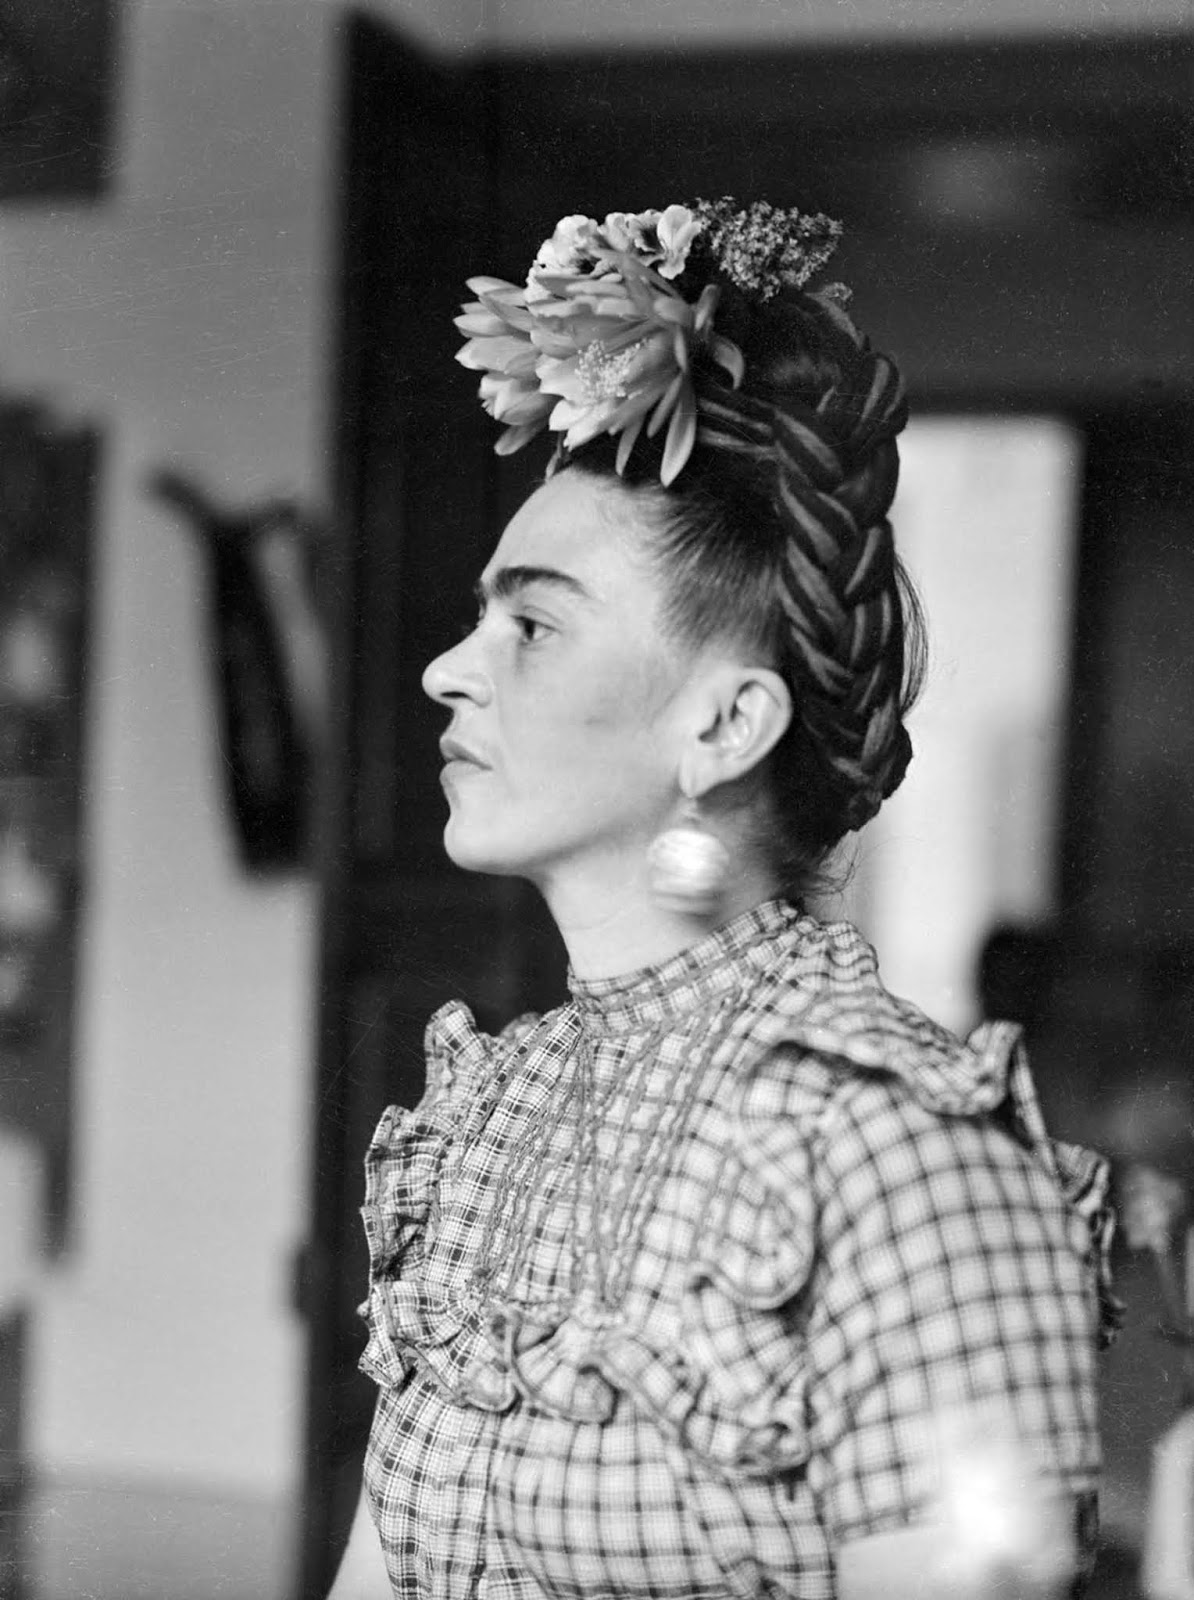 Although she was disabled by polio as a child, Kahlo had been a promising student headed for medical school until a traffic accident at age eighteen, which caused her lifelong pain and medical problems.